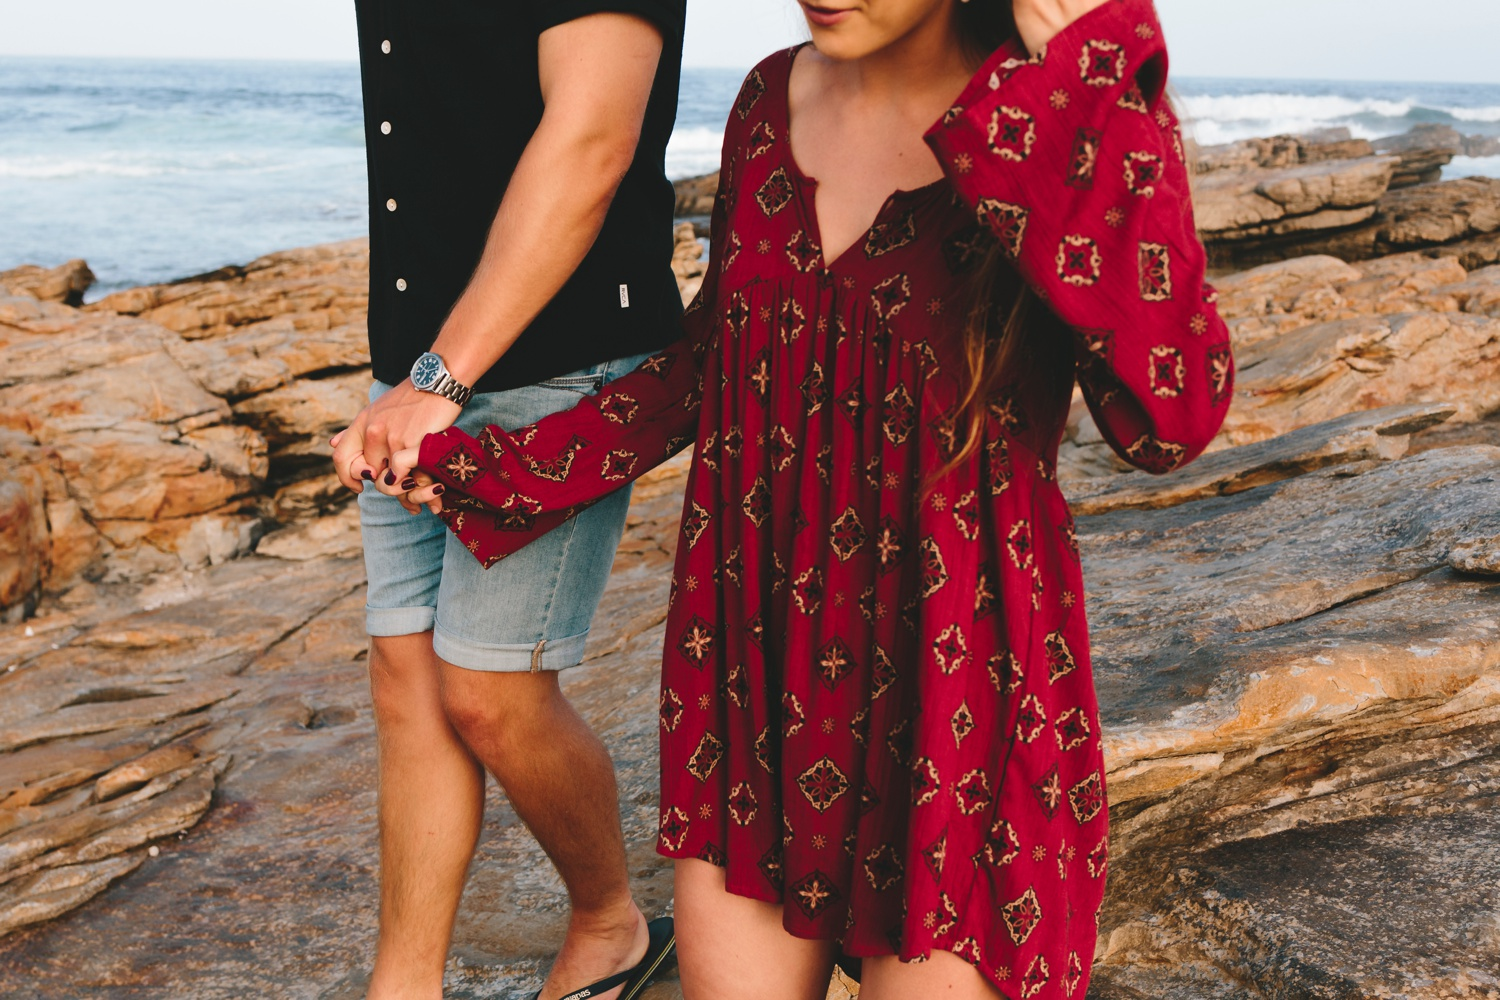 Marie&Andre-CharlieRay-st-francis-cape-ocean-wild-side-couple_0504.jpg